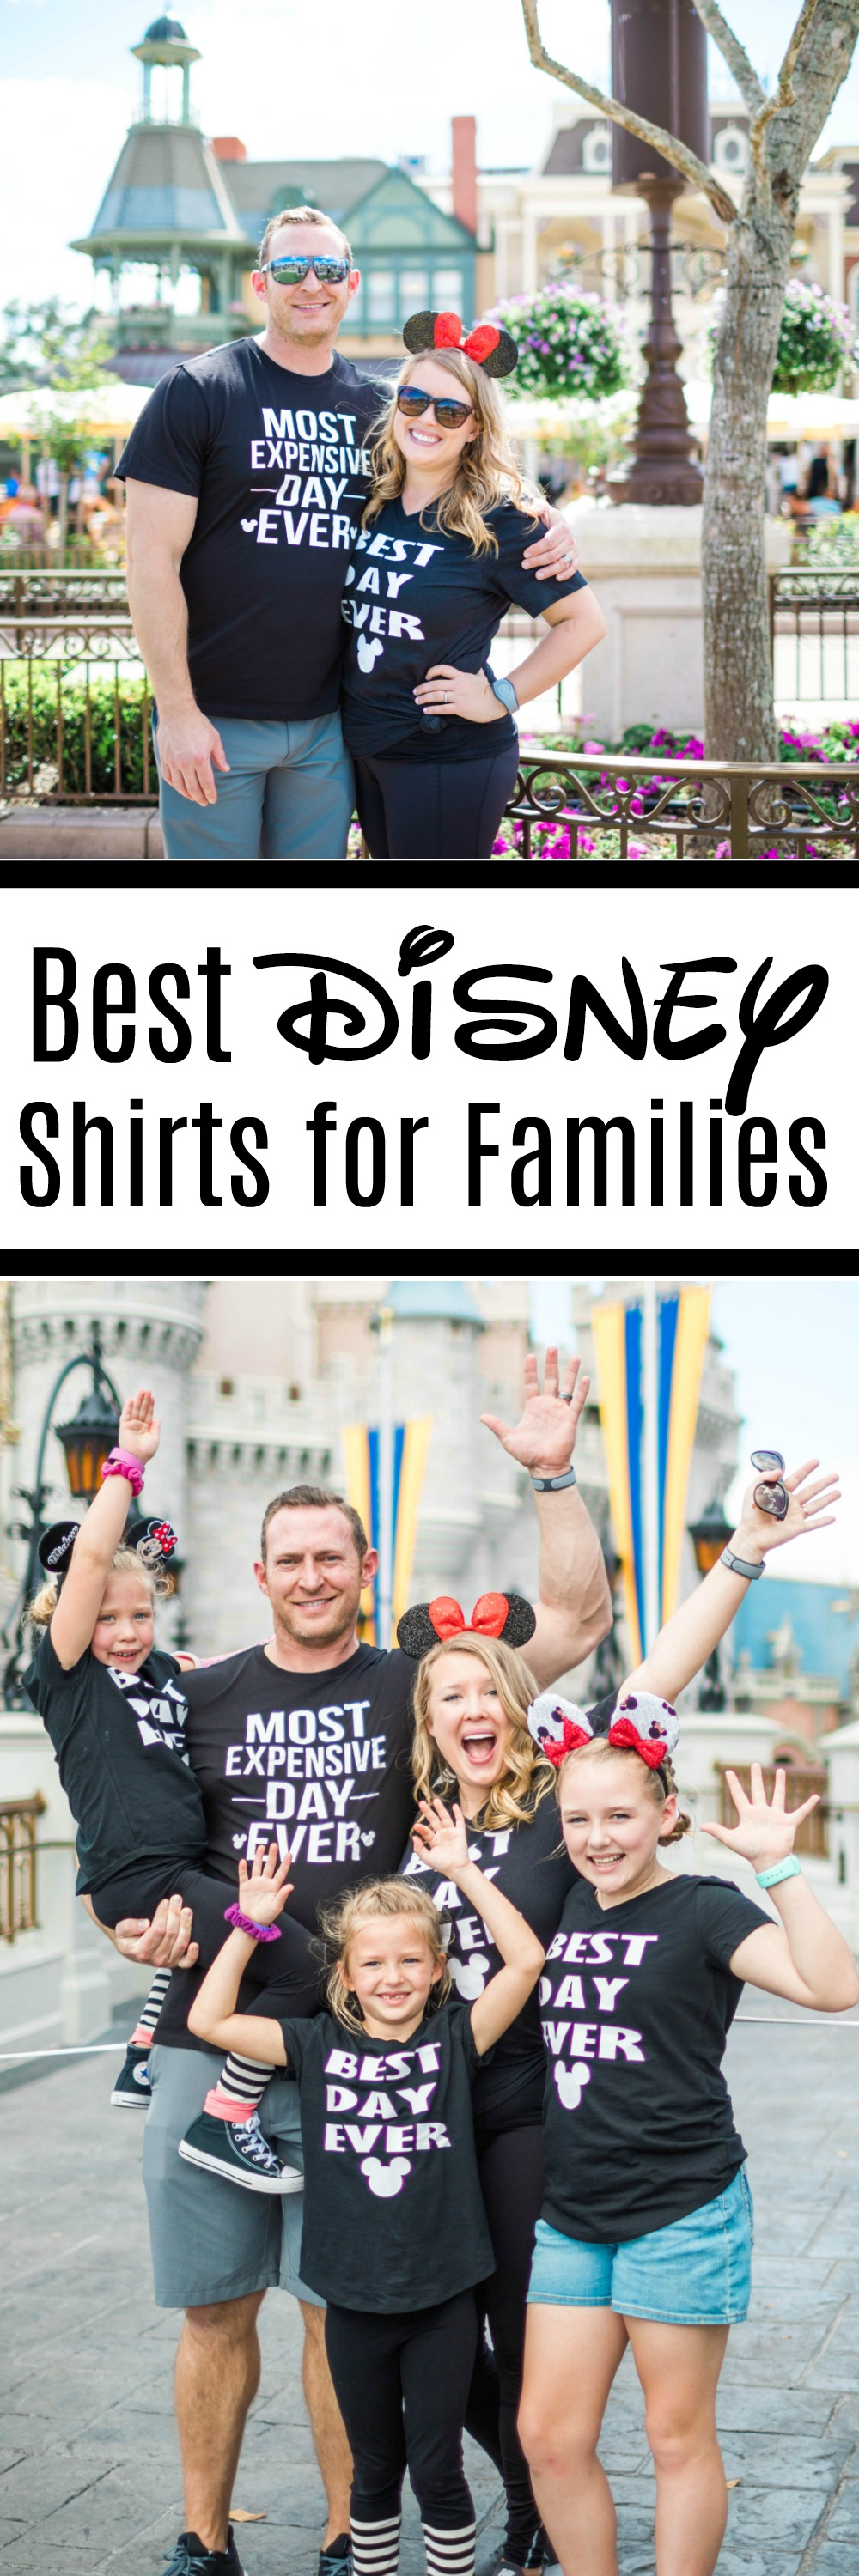 Best Disney Shirts for Families- *Free file for Silhouette and Cricut